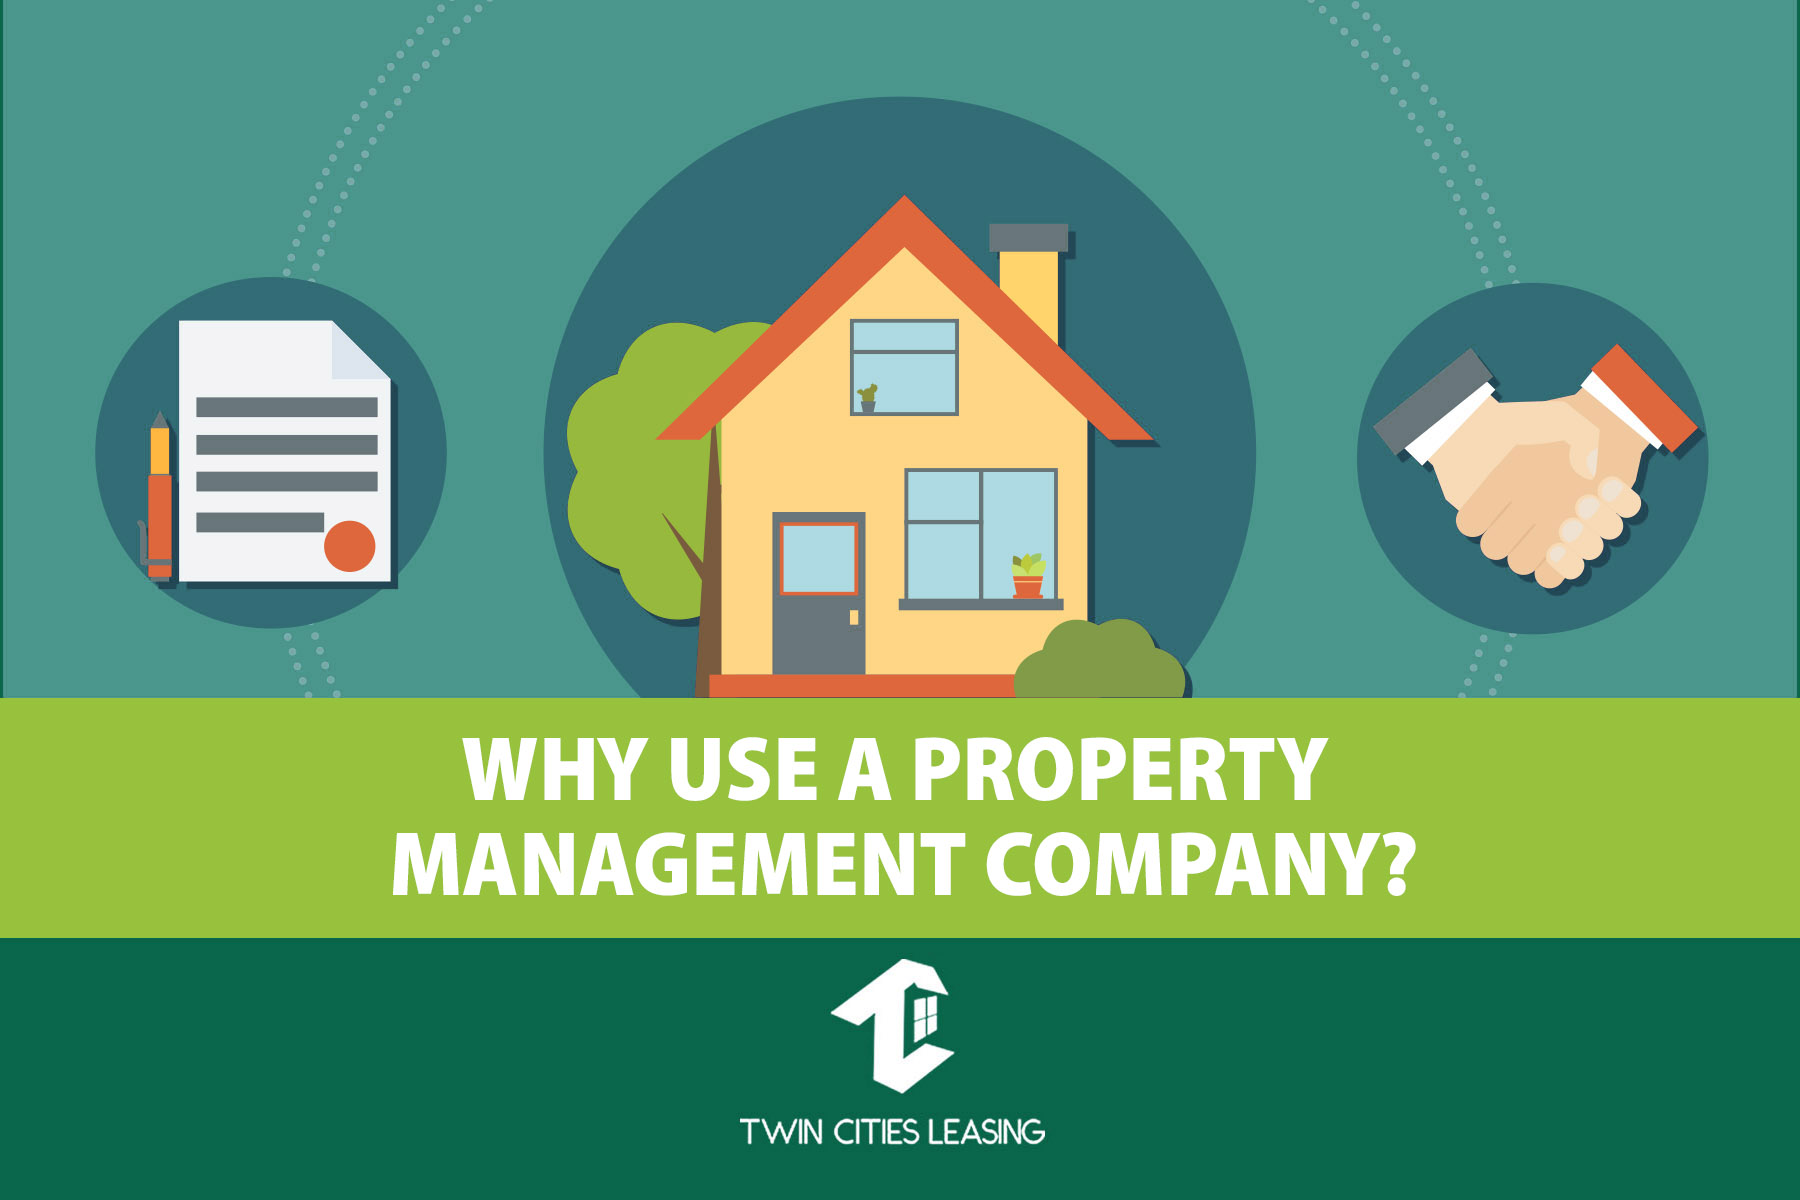 Why Use a Property Management Company in Minnesota